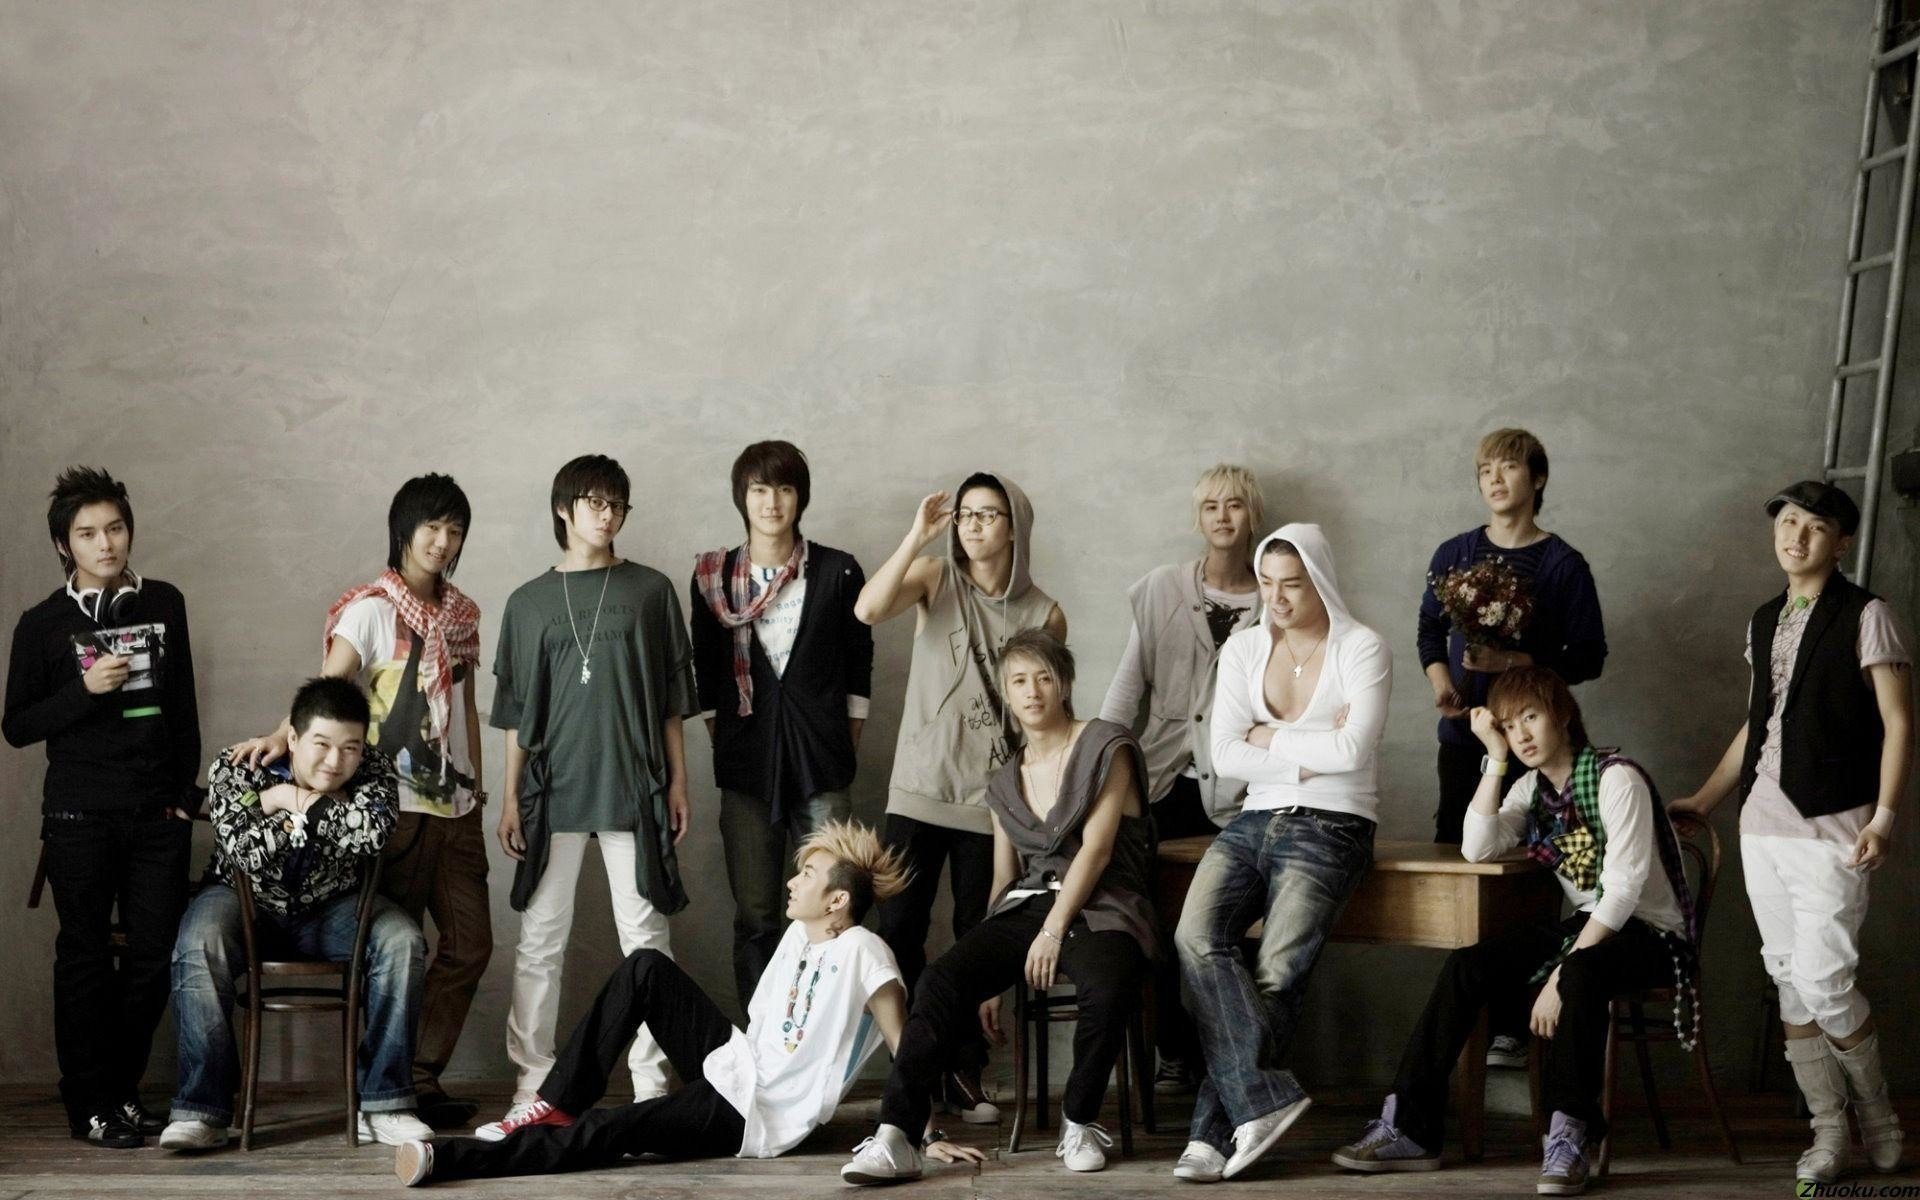 1920x1200 Super Junior Wallpapers For Computer #6531 Wallpaper | Risewall.